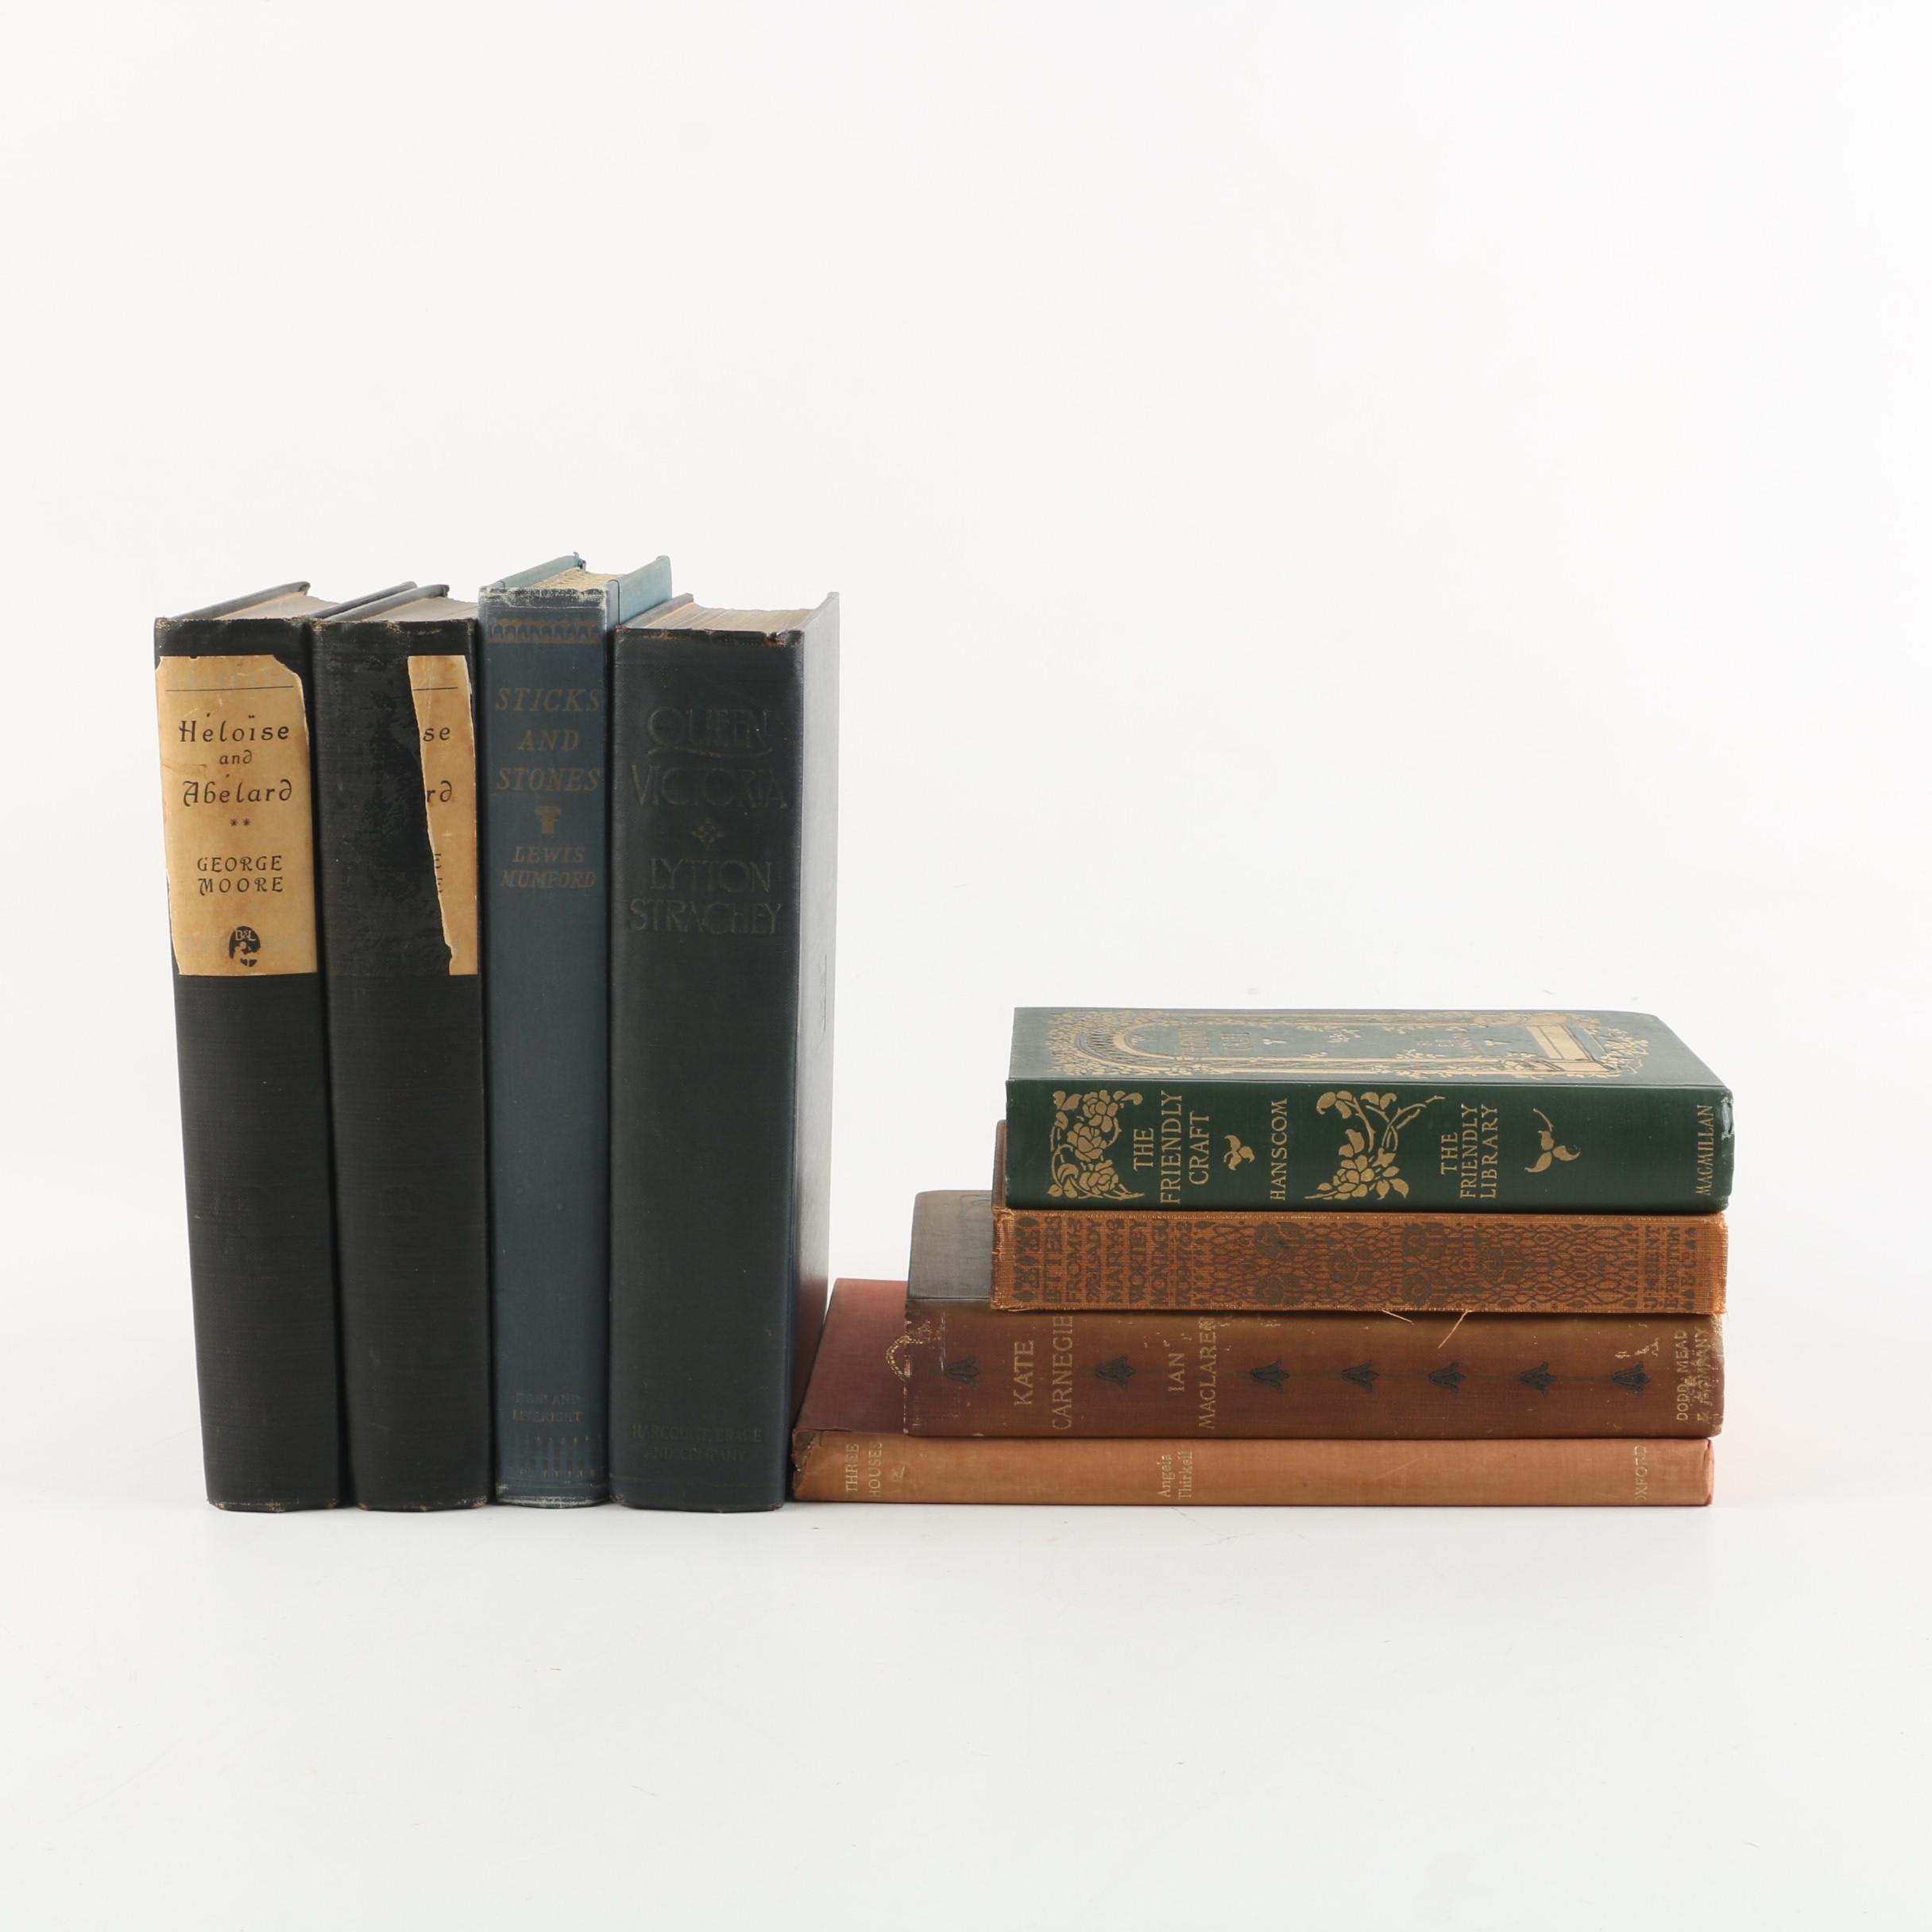 """""""Héloïse and Abélard"""" by George Moore and Other Vintage Books"""